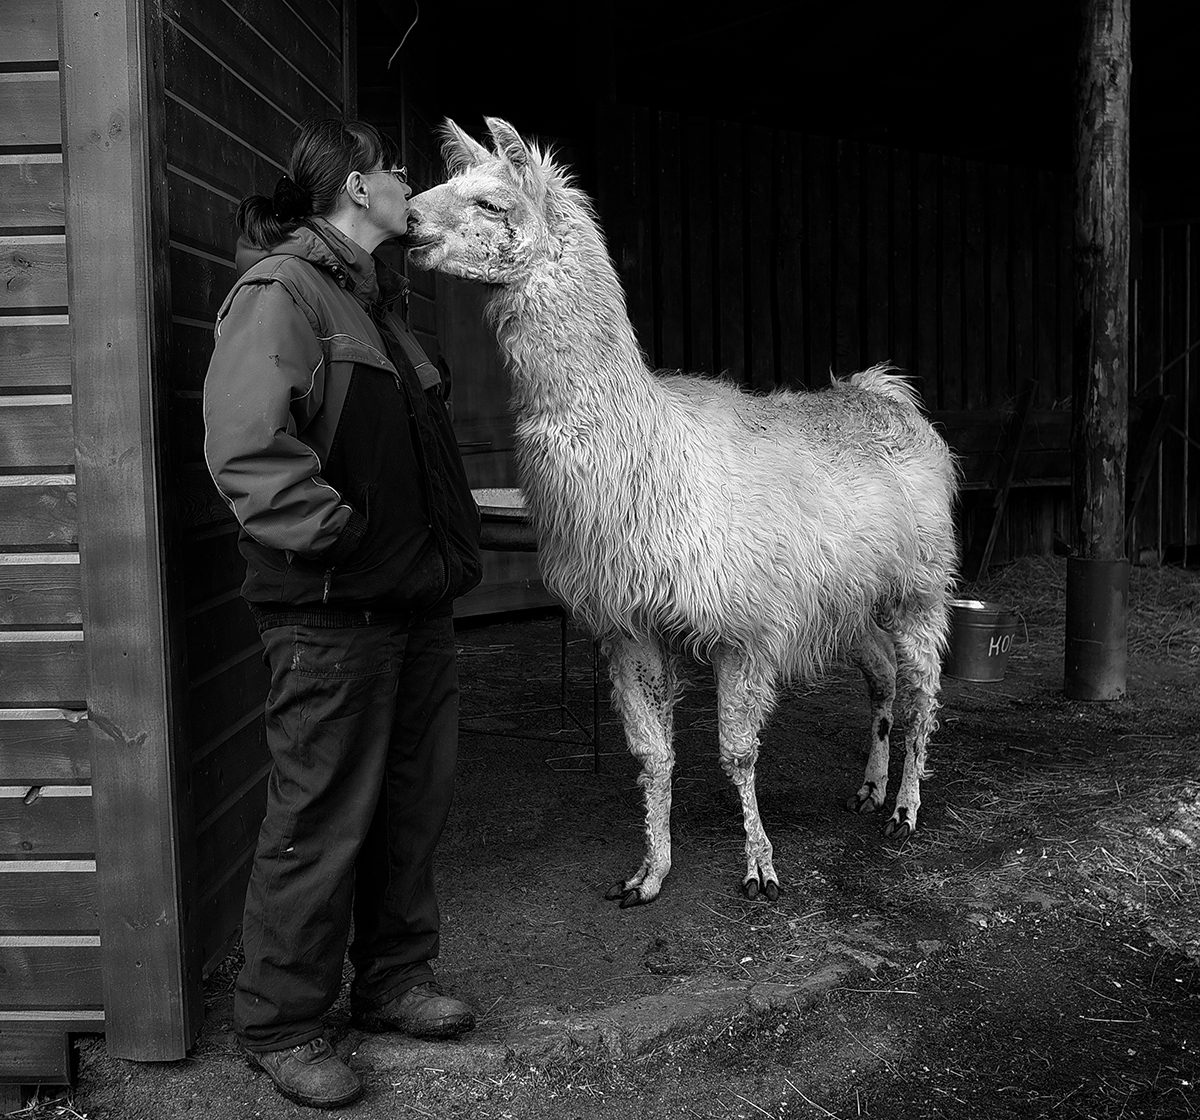 """I was fascinated by the courage and dedication of these people. They readily perform tasks that require physical strength and often work extra shifts and sacrifice their free time, even if the pay leaves a lot to be desired."" // Galya, head zoologist, and Chizhik the llama"